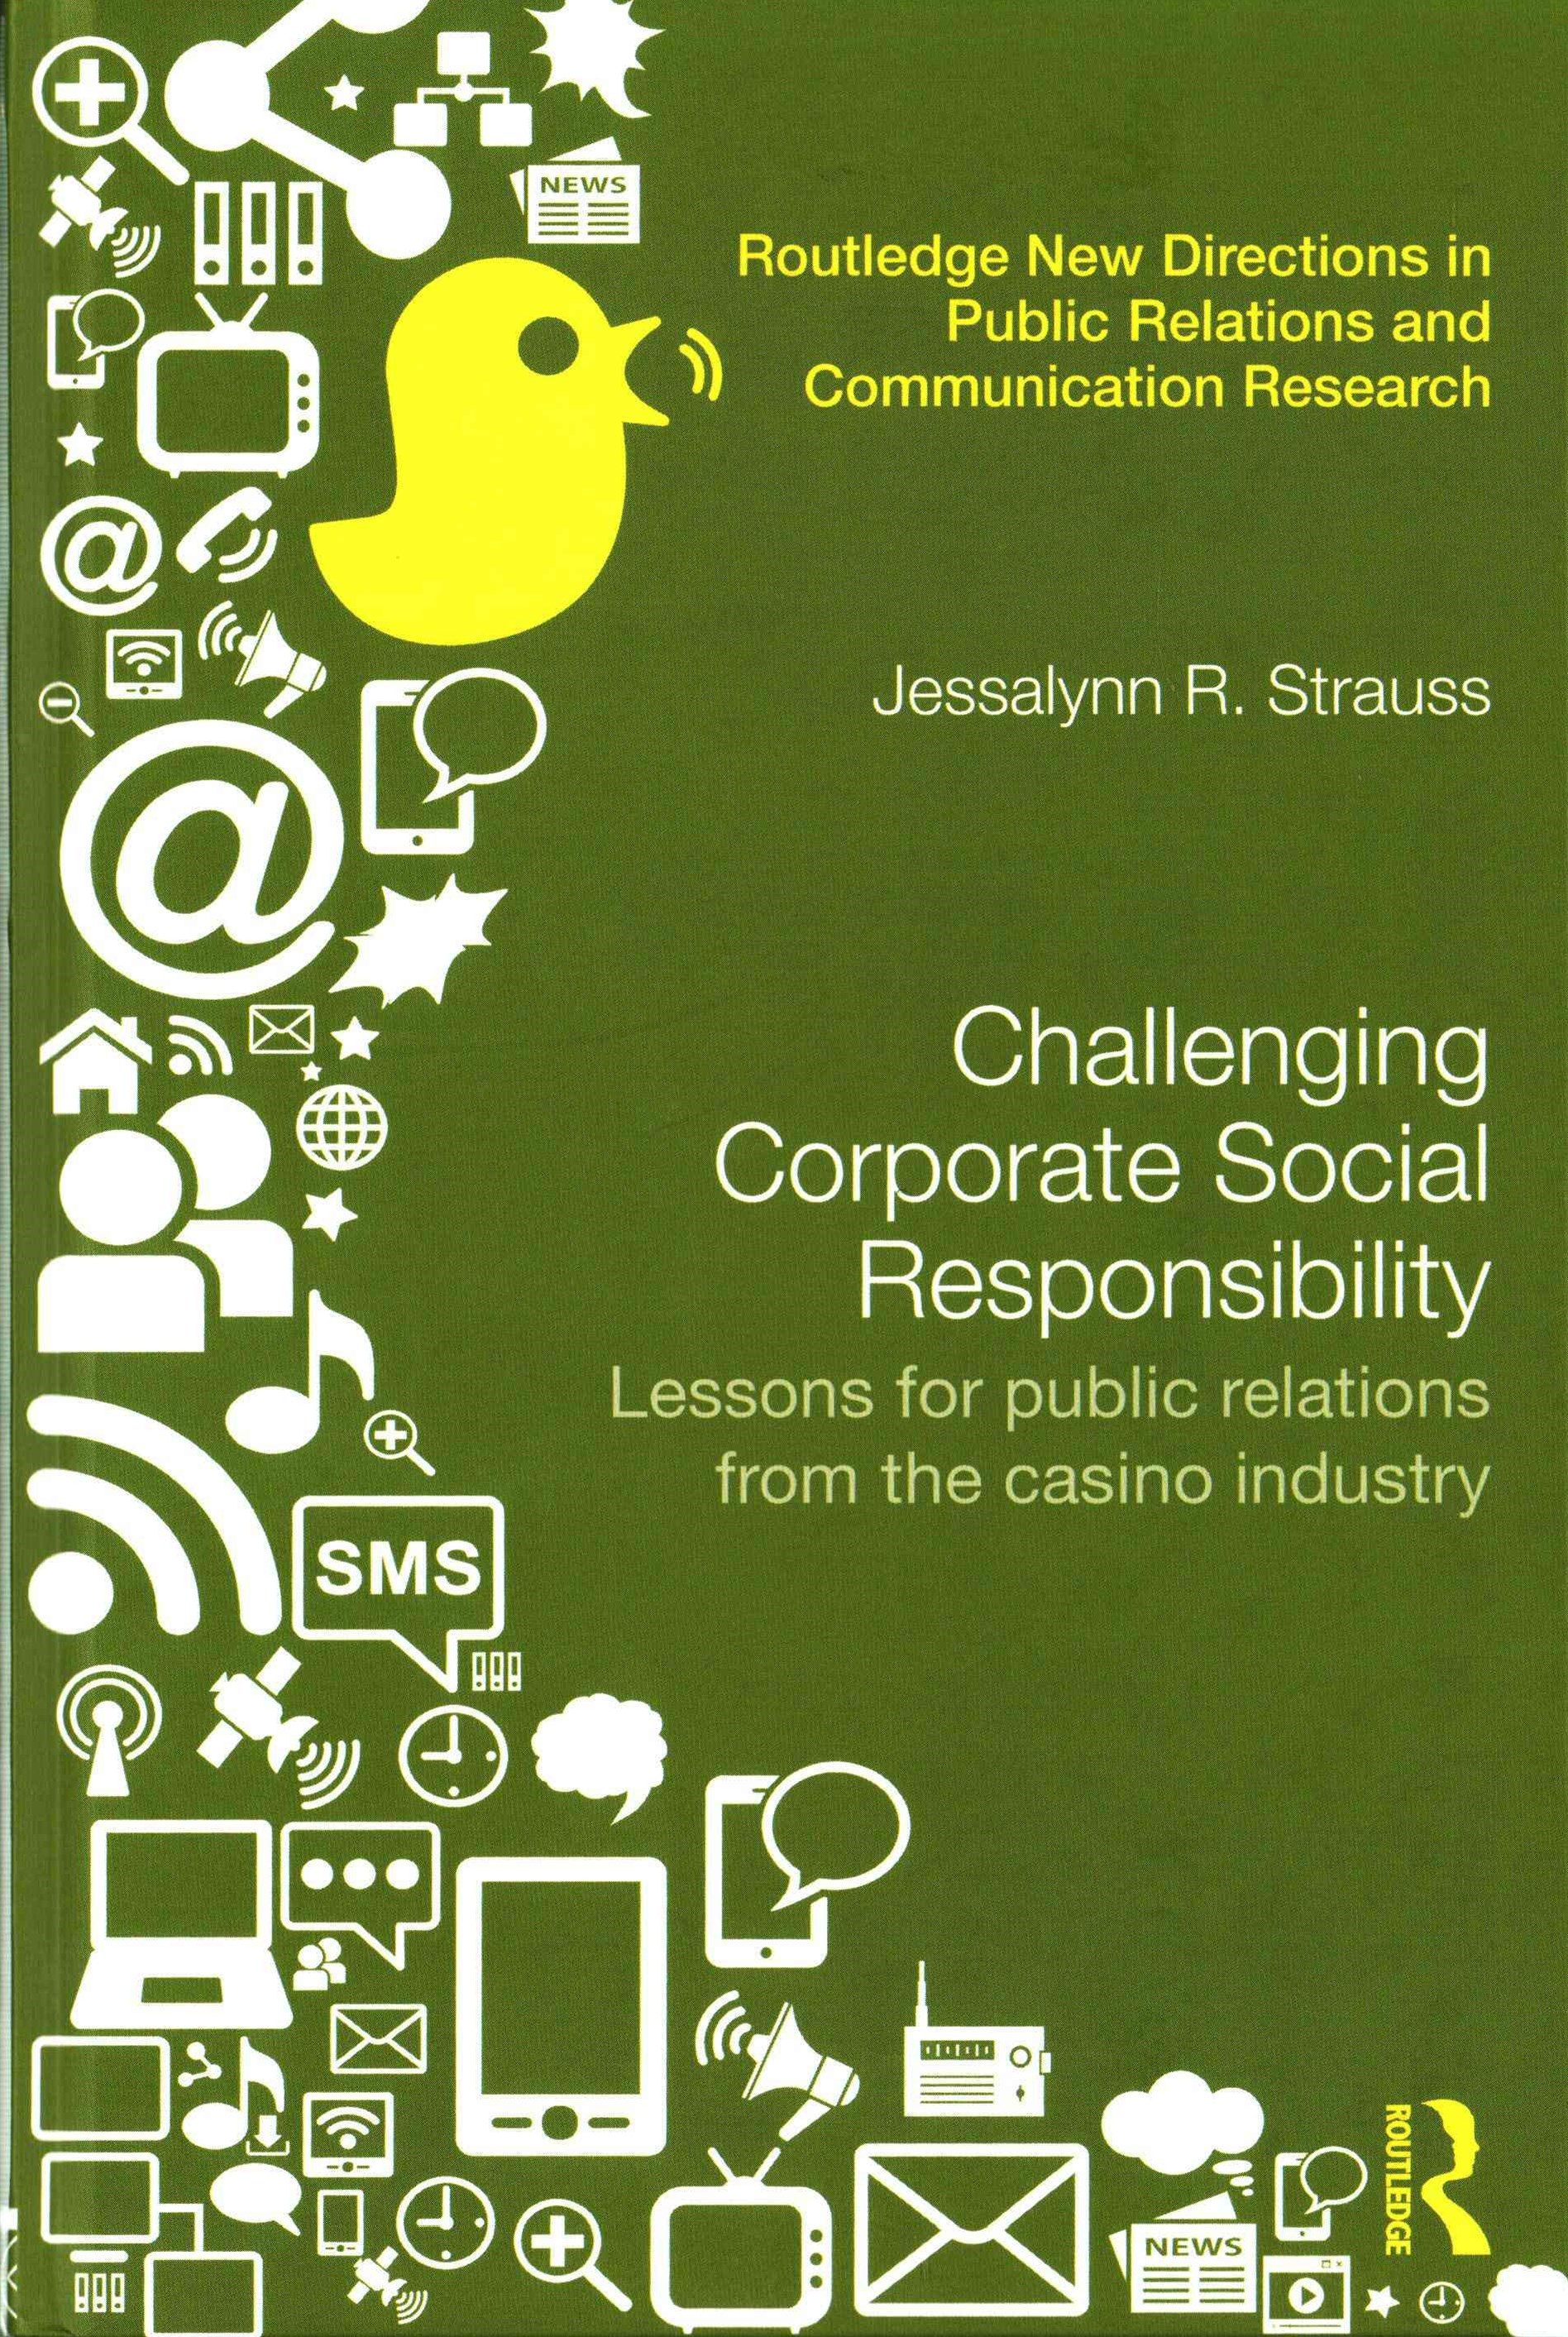 Challenging Corporate Social Responsibility